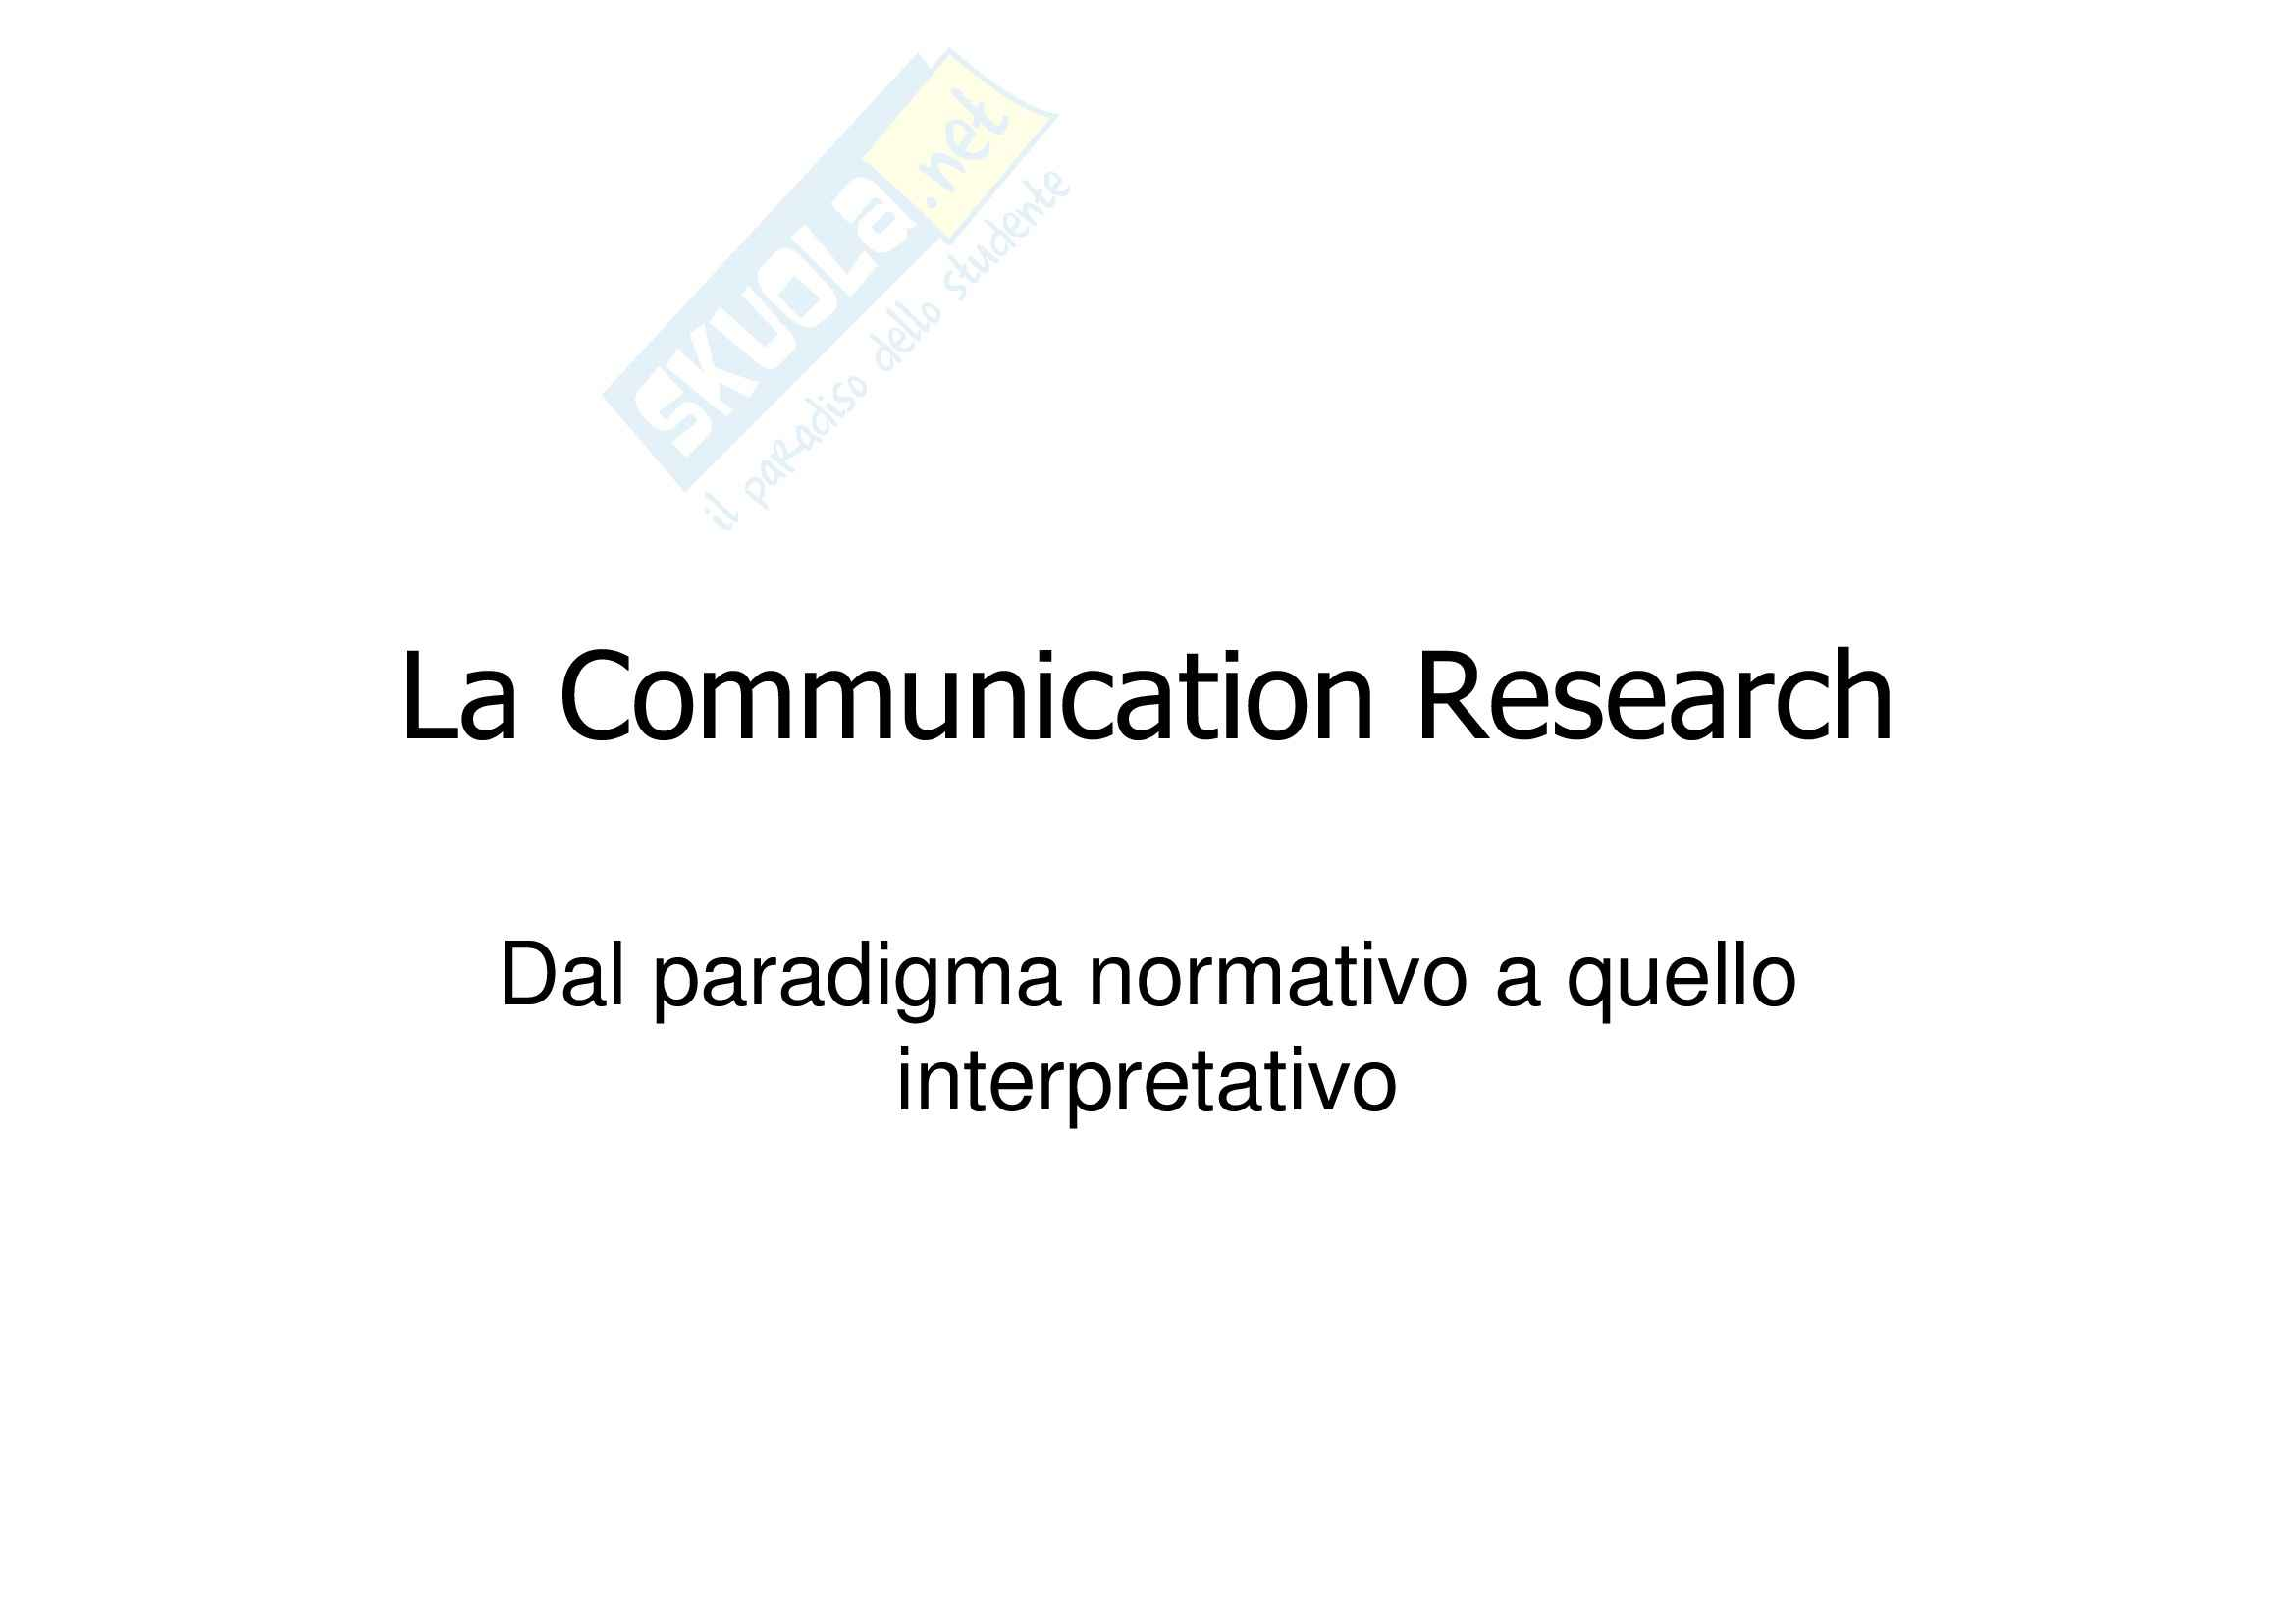 La Communication Research